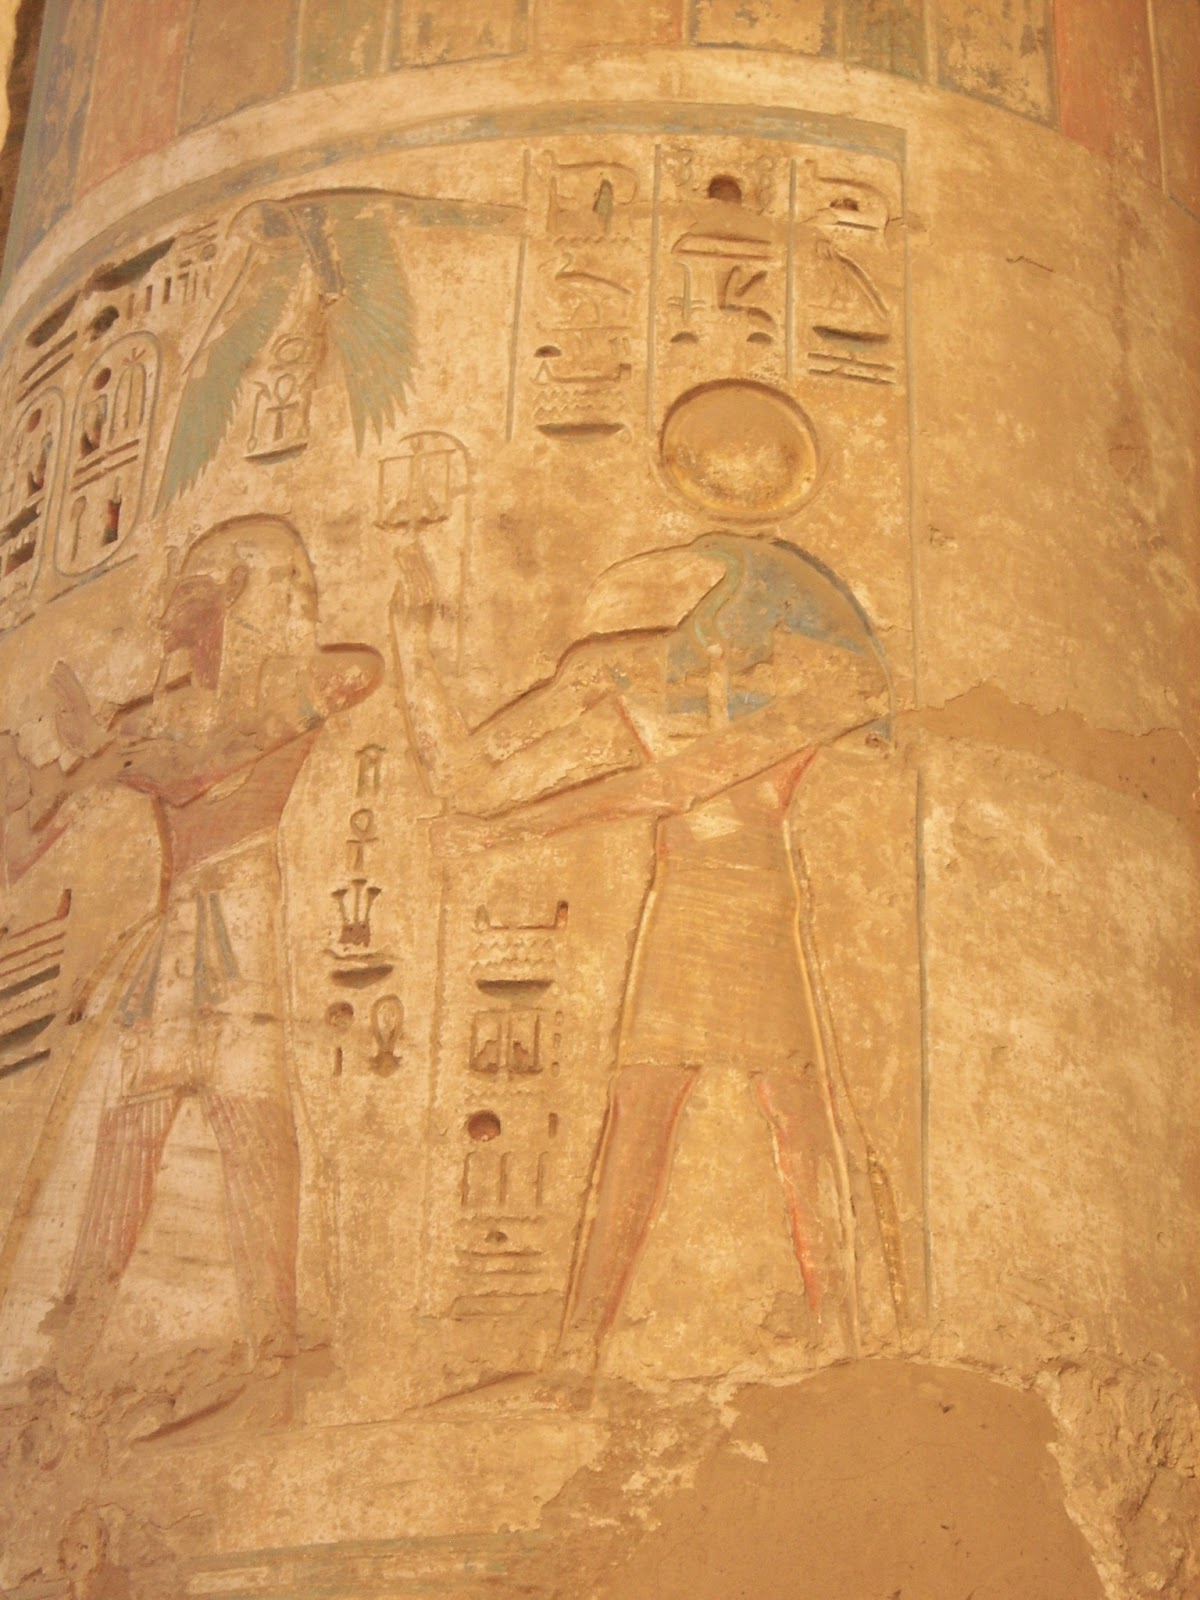 thoth god of writing and wisdom